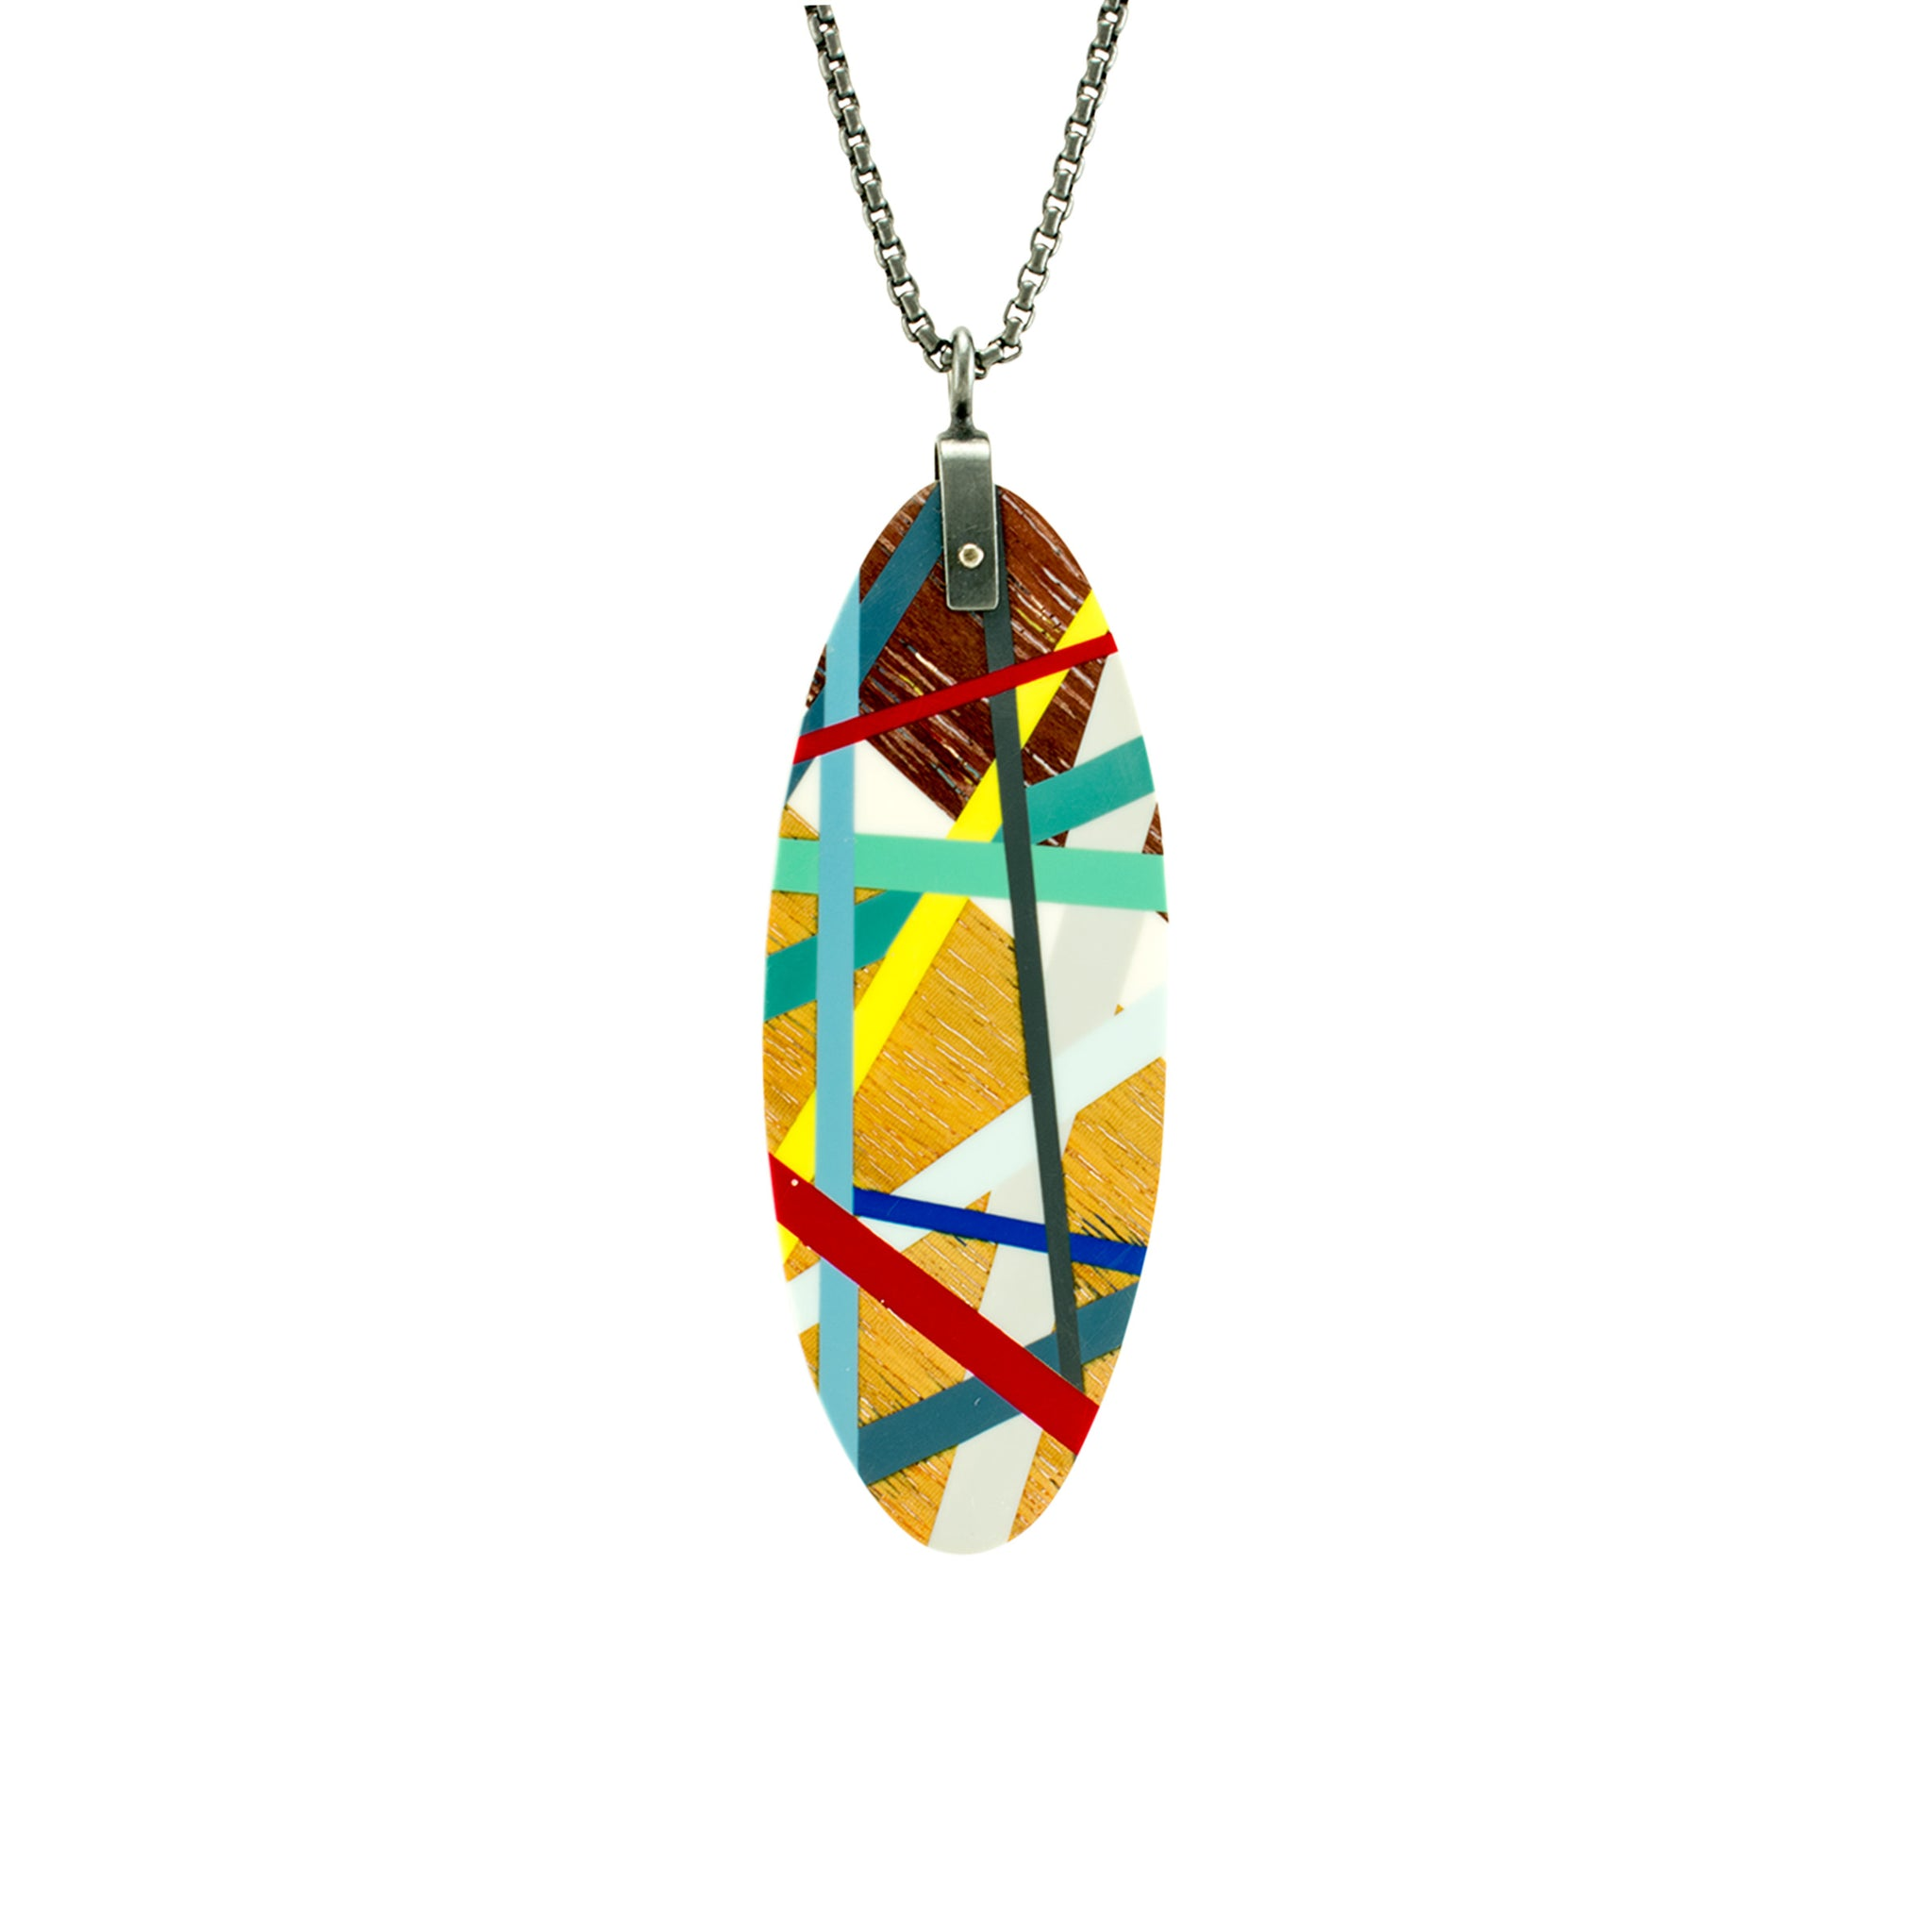 Oval Wood Pendant with Primary Color Inlay